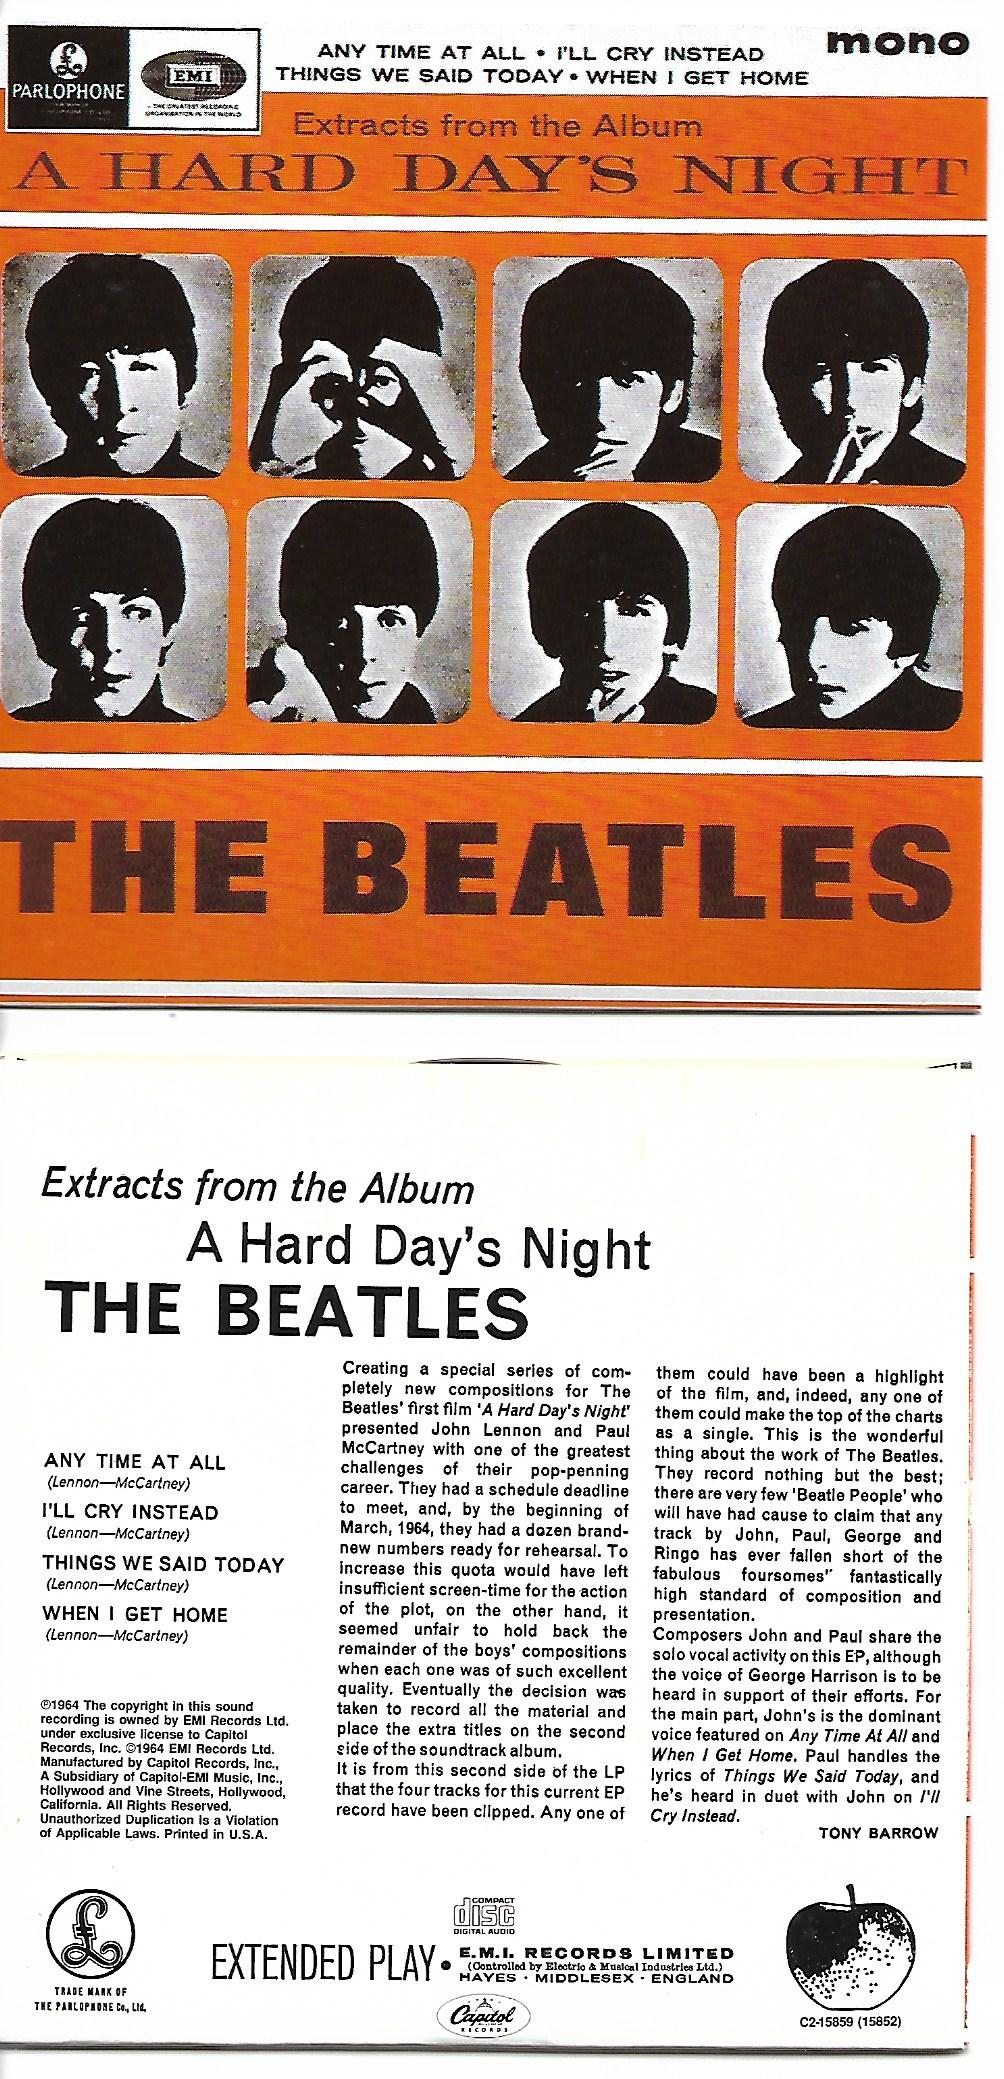 THE BEATLES - Extracts from the Album A Hard Day's Night EP 4-TRACK CARD SLEEVE - CD single